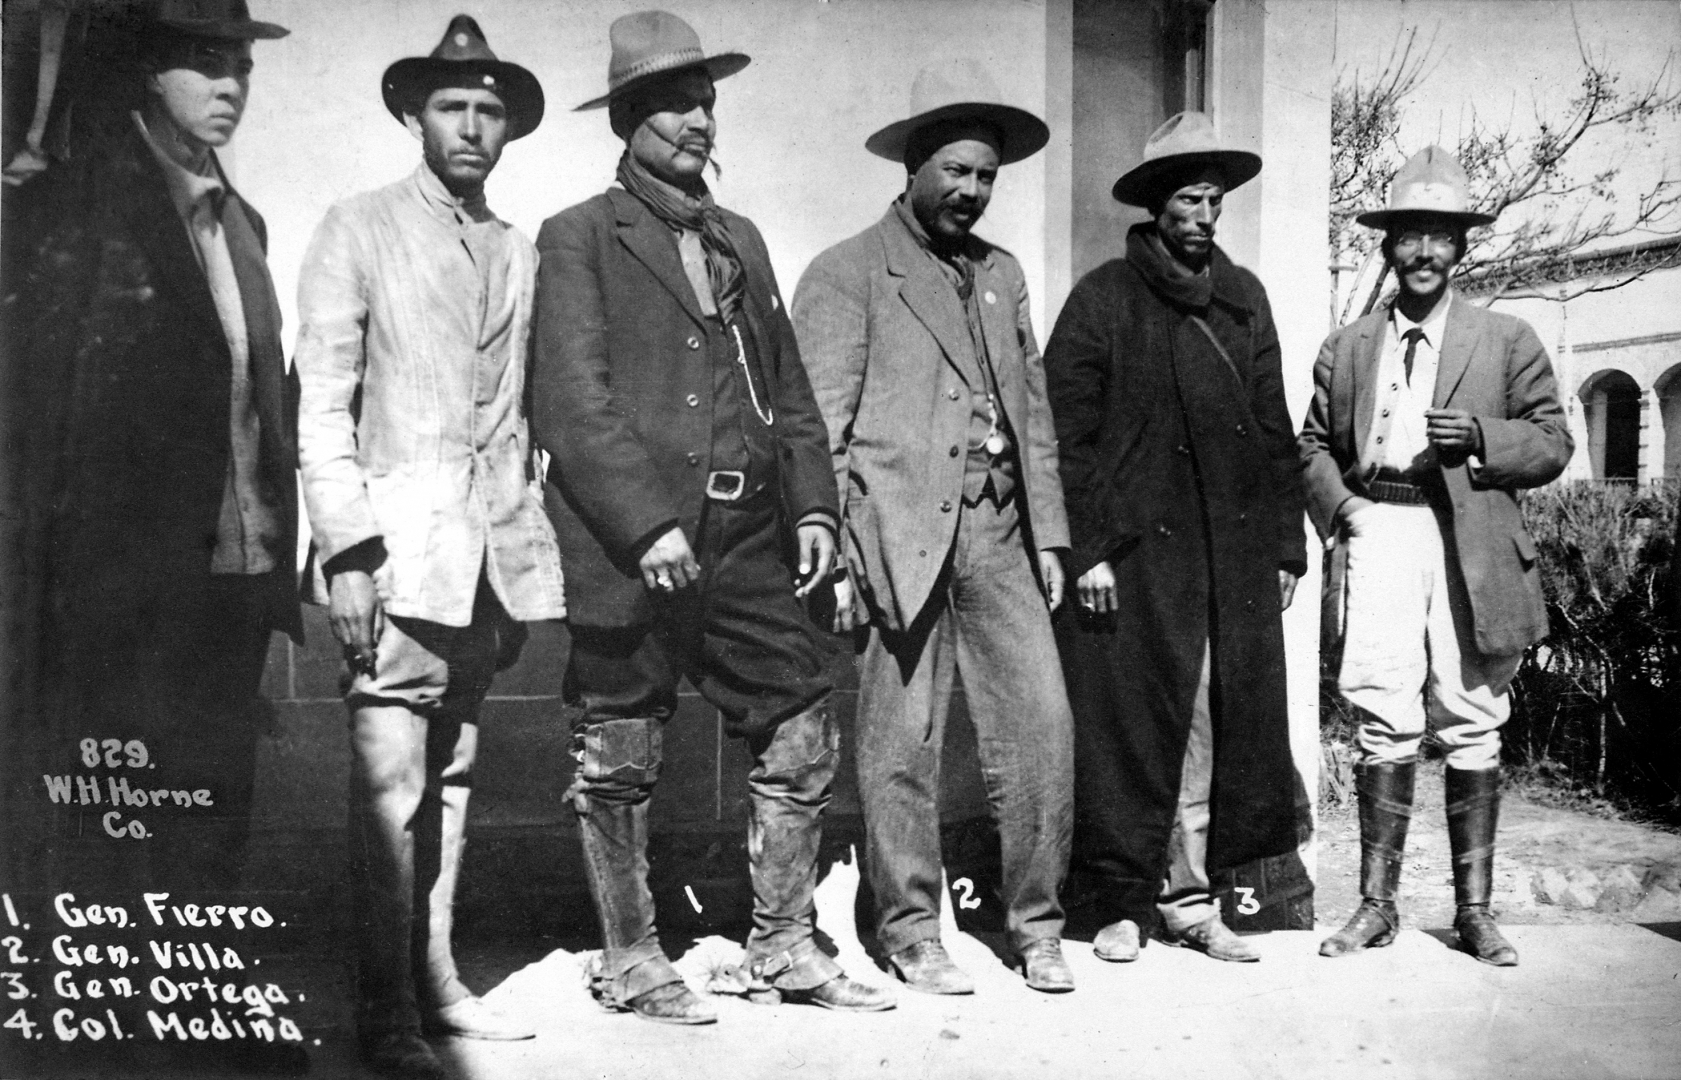 the role of francisco pancho villa in the mexican revolution of 1910 1911 Pancho villa and the mexican revolution this year is the centenary of pancho villa's raid on columbus, new mexico, the last invasion of the usa by foreign troops it sparked a punitive expedition by us troops led by general pershing, with actions at parral and a larger battle at carrizal on june 21 1916.